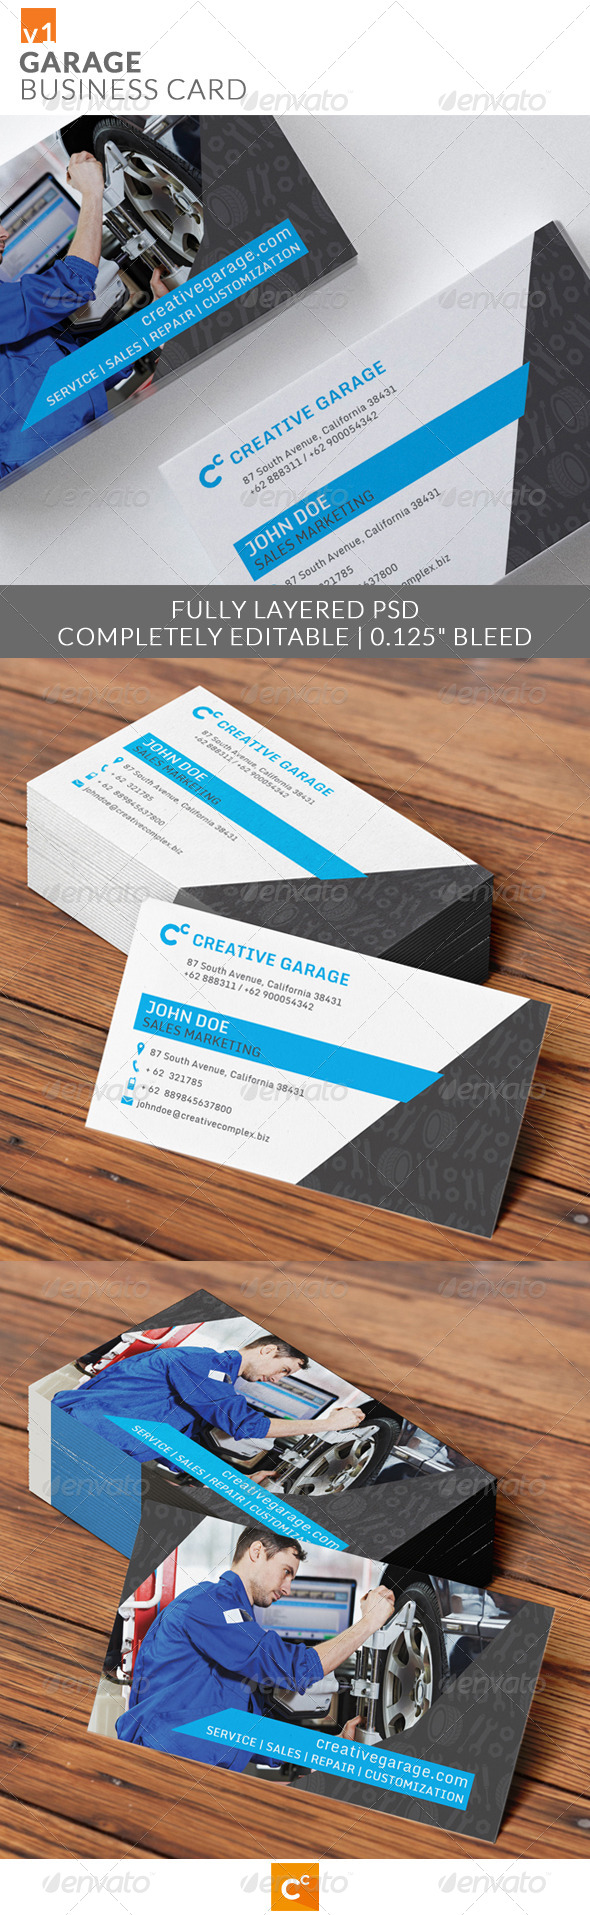 GraphicRiver Garage Business Card 7912892